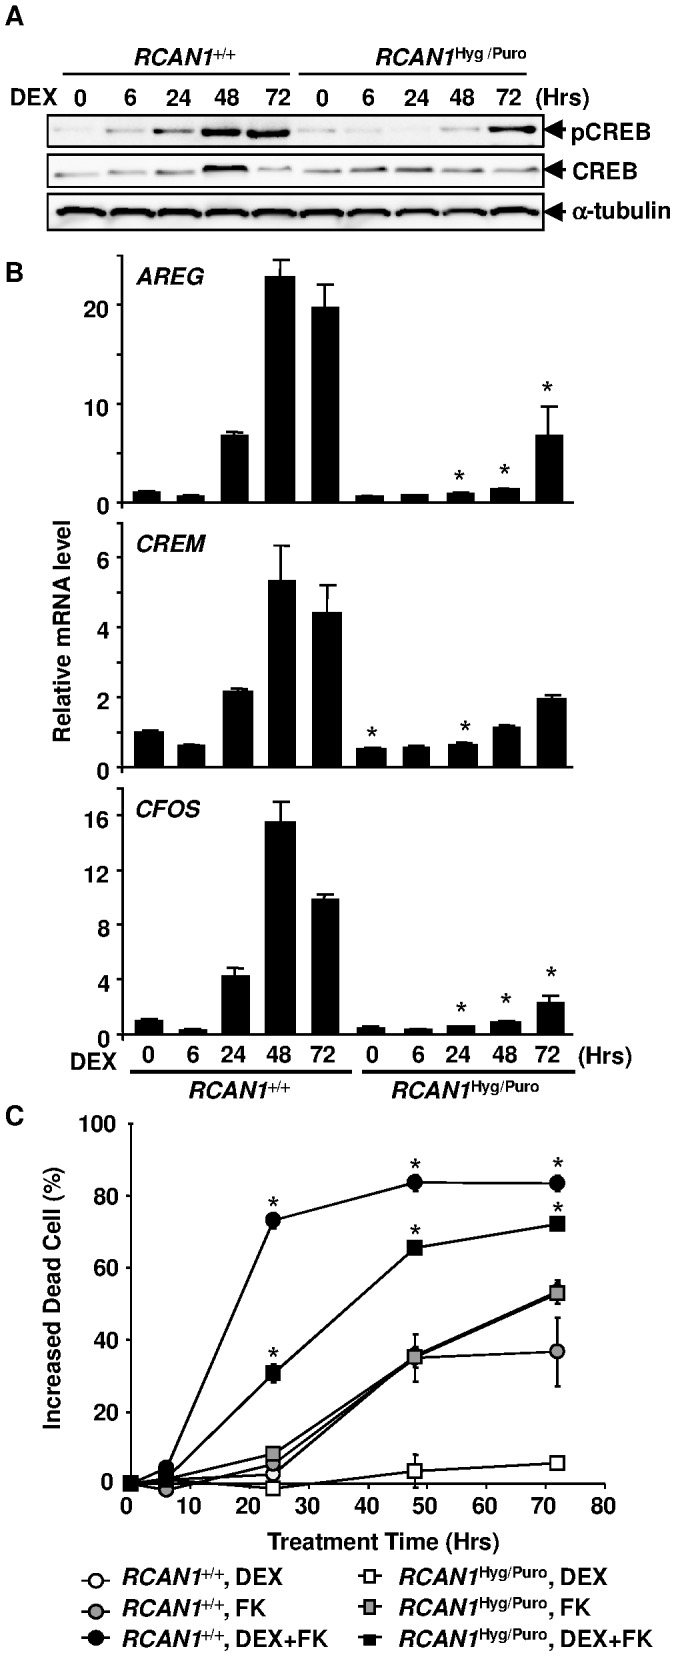 GC activates CREB in Nalm-6 cells. ( A ) Cell lysate obtained from DEX-treated <t>RCAN1</t> +/+ and RCAN1 Hyg/Puro cells was subjected to immunoblotting using anti-CREB and anti-pCREB (Ser133) antibodies. ( B ) RNA prepared from RCAN1 +/+ and RCAN1 Hyg/Puro cells treated with 10 −6 M DEX was subjected to quantitative <t>RT-PCR</t> using primer sets that hybridize to CREB target genes, AREG , CREM , and CFOS . *, p